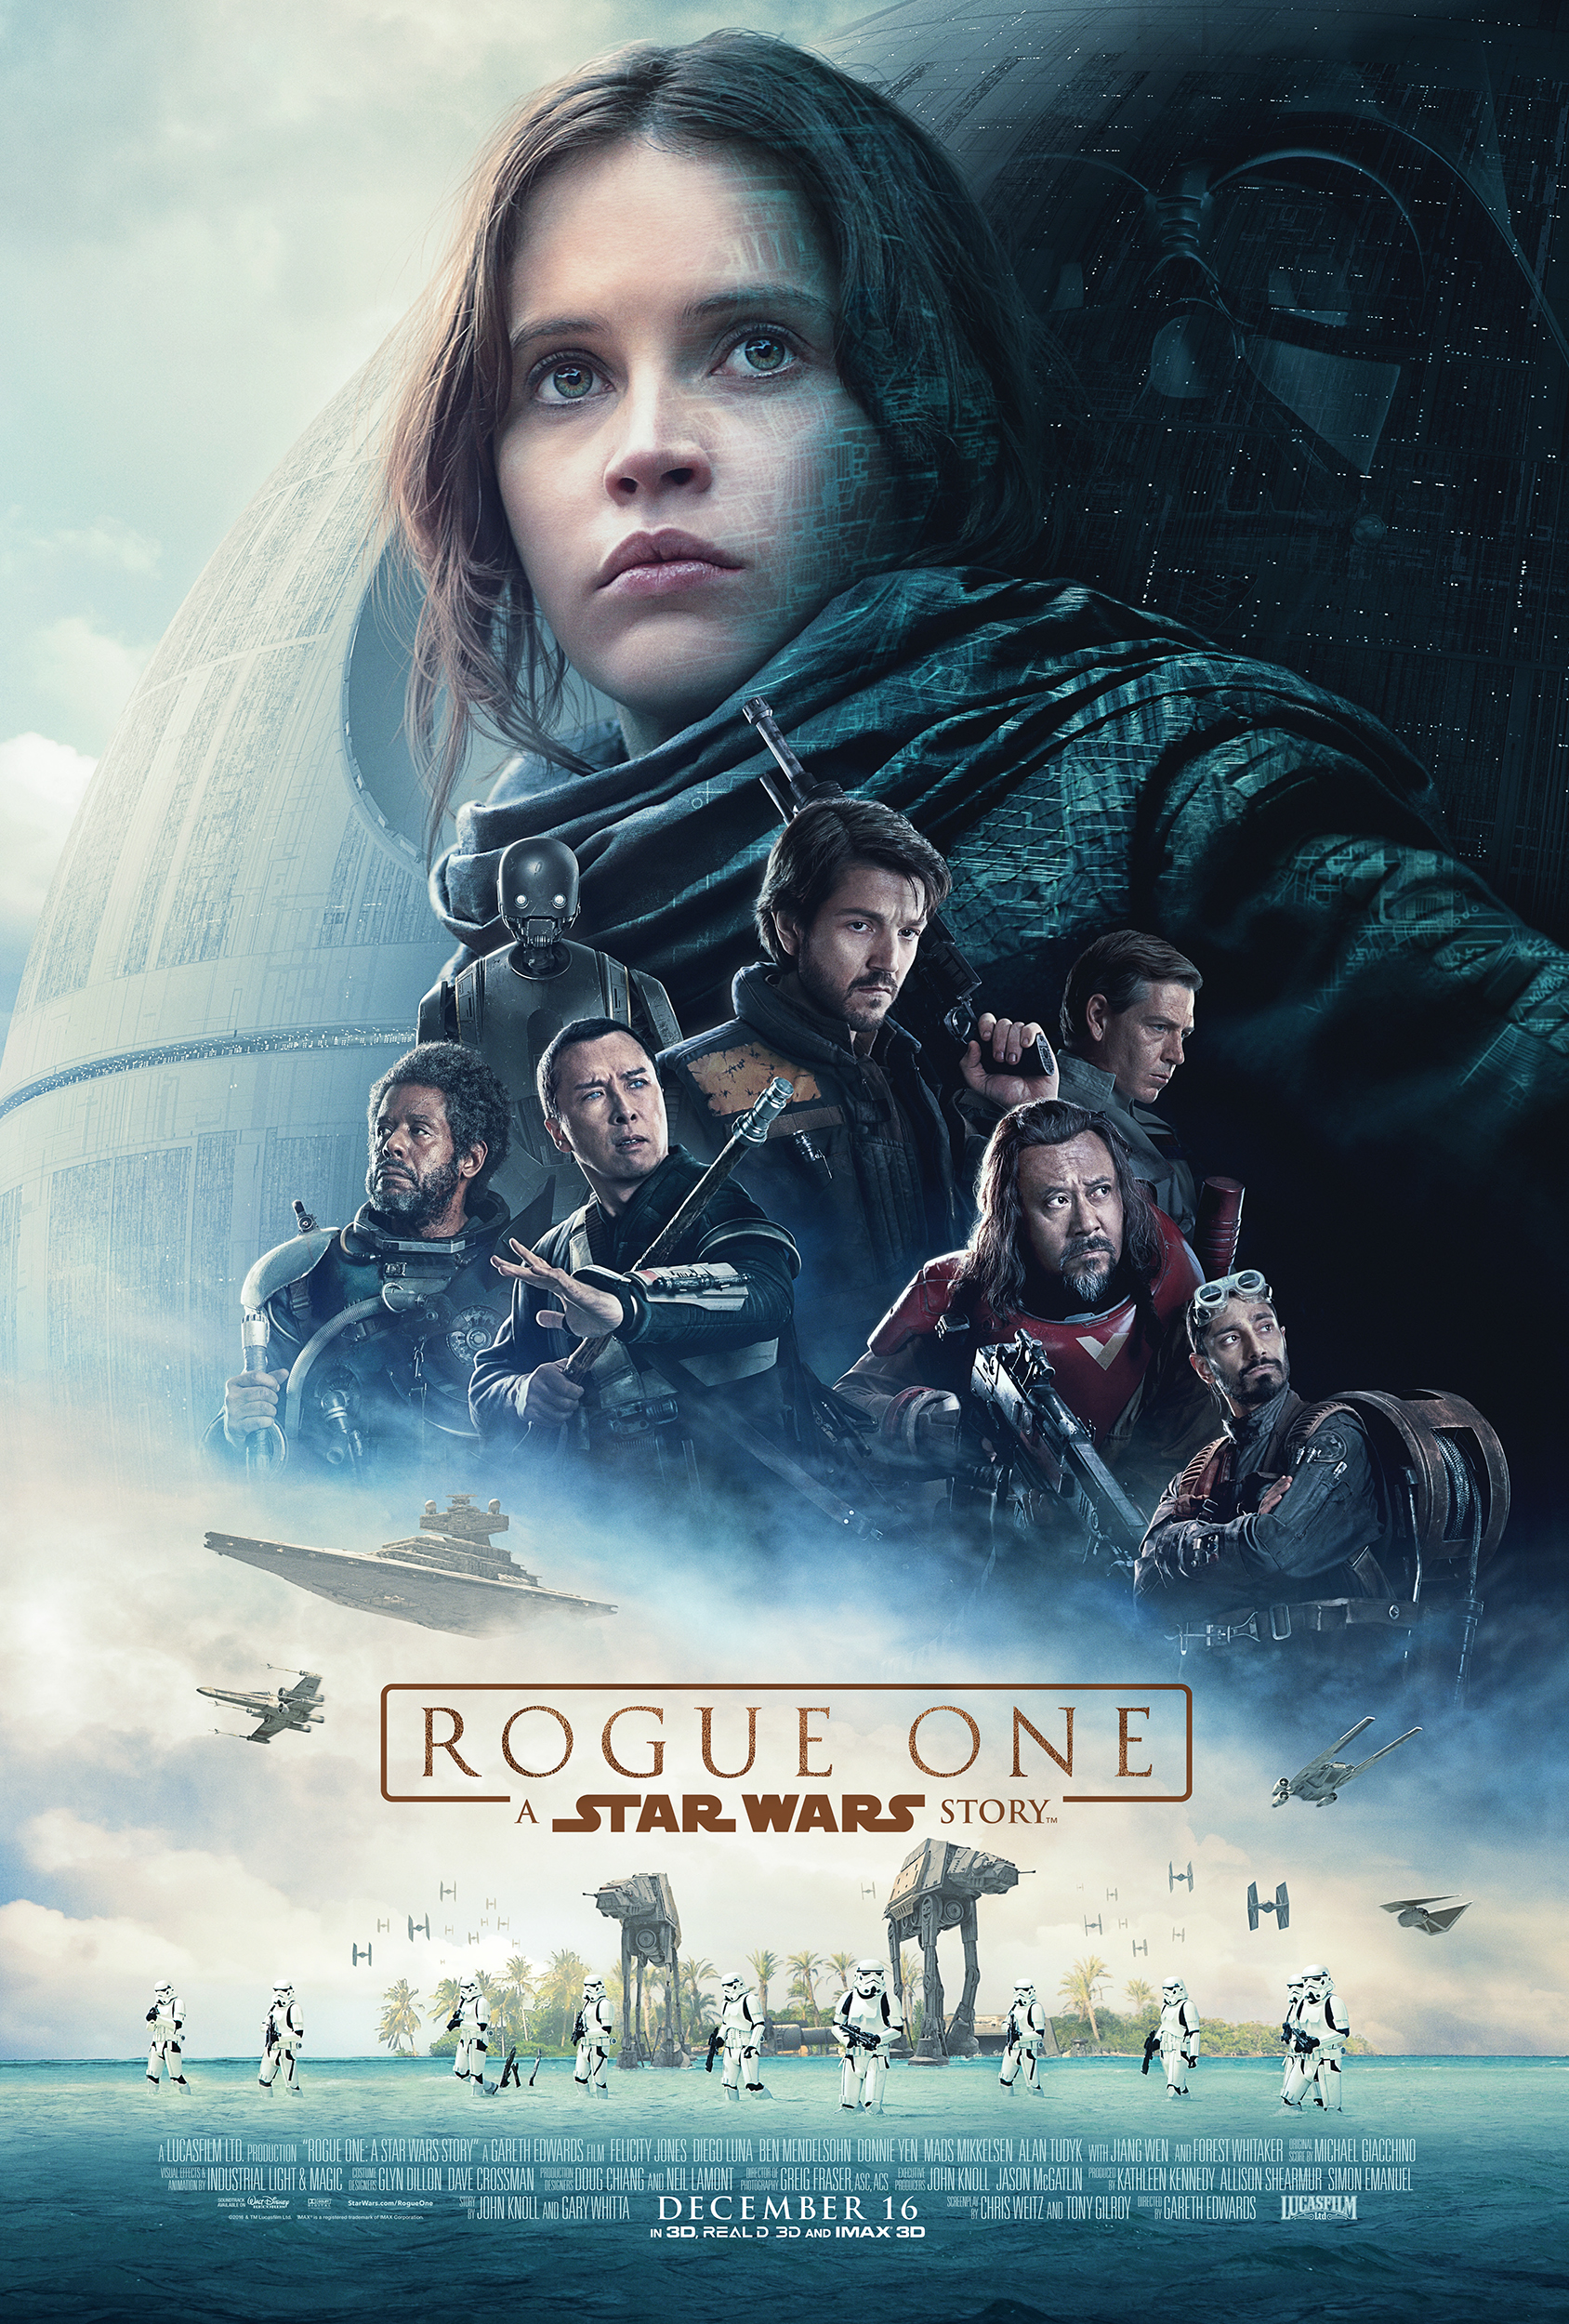 MOVIE REVIEW – ROGUE ONE: A STAR WARS STORY